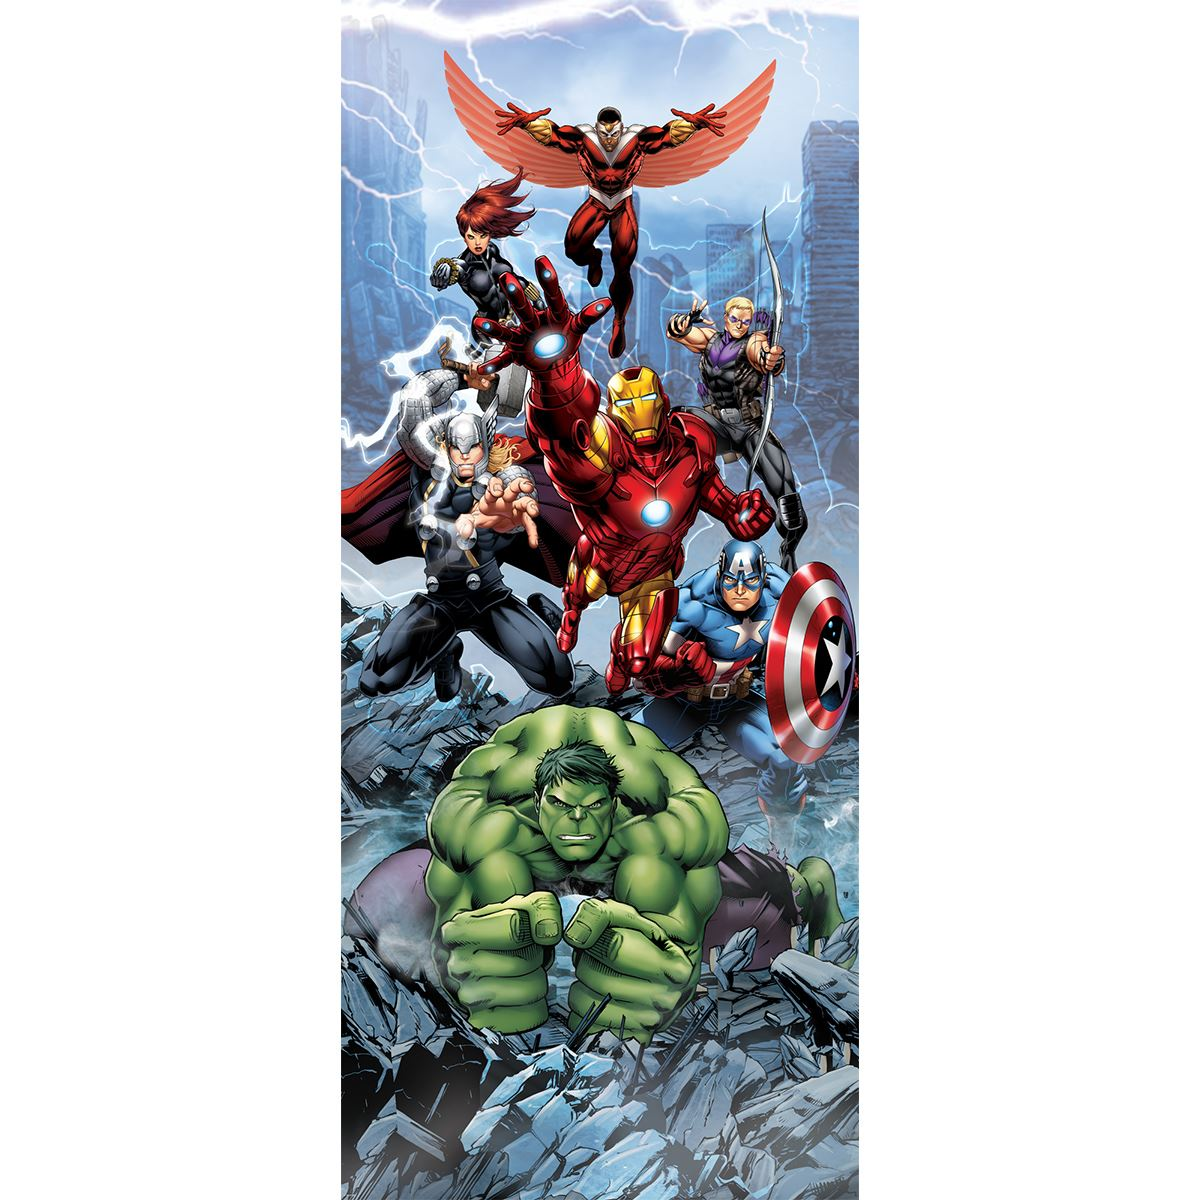 papier peint photo marvel avengers comics 12 dimensions disponibles lesaccessoires. Black Bedroom Furniture Sets. Home Design Ideas